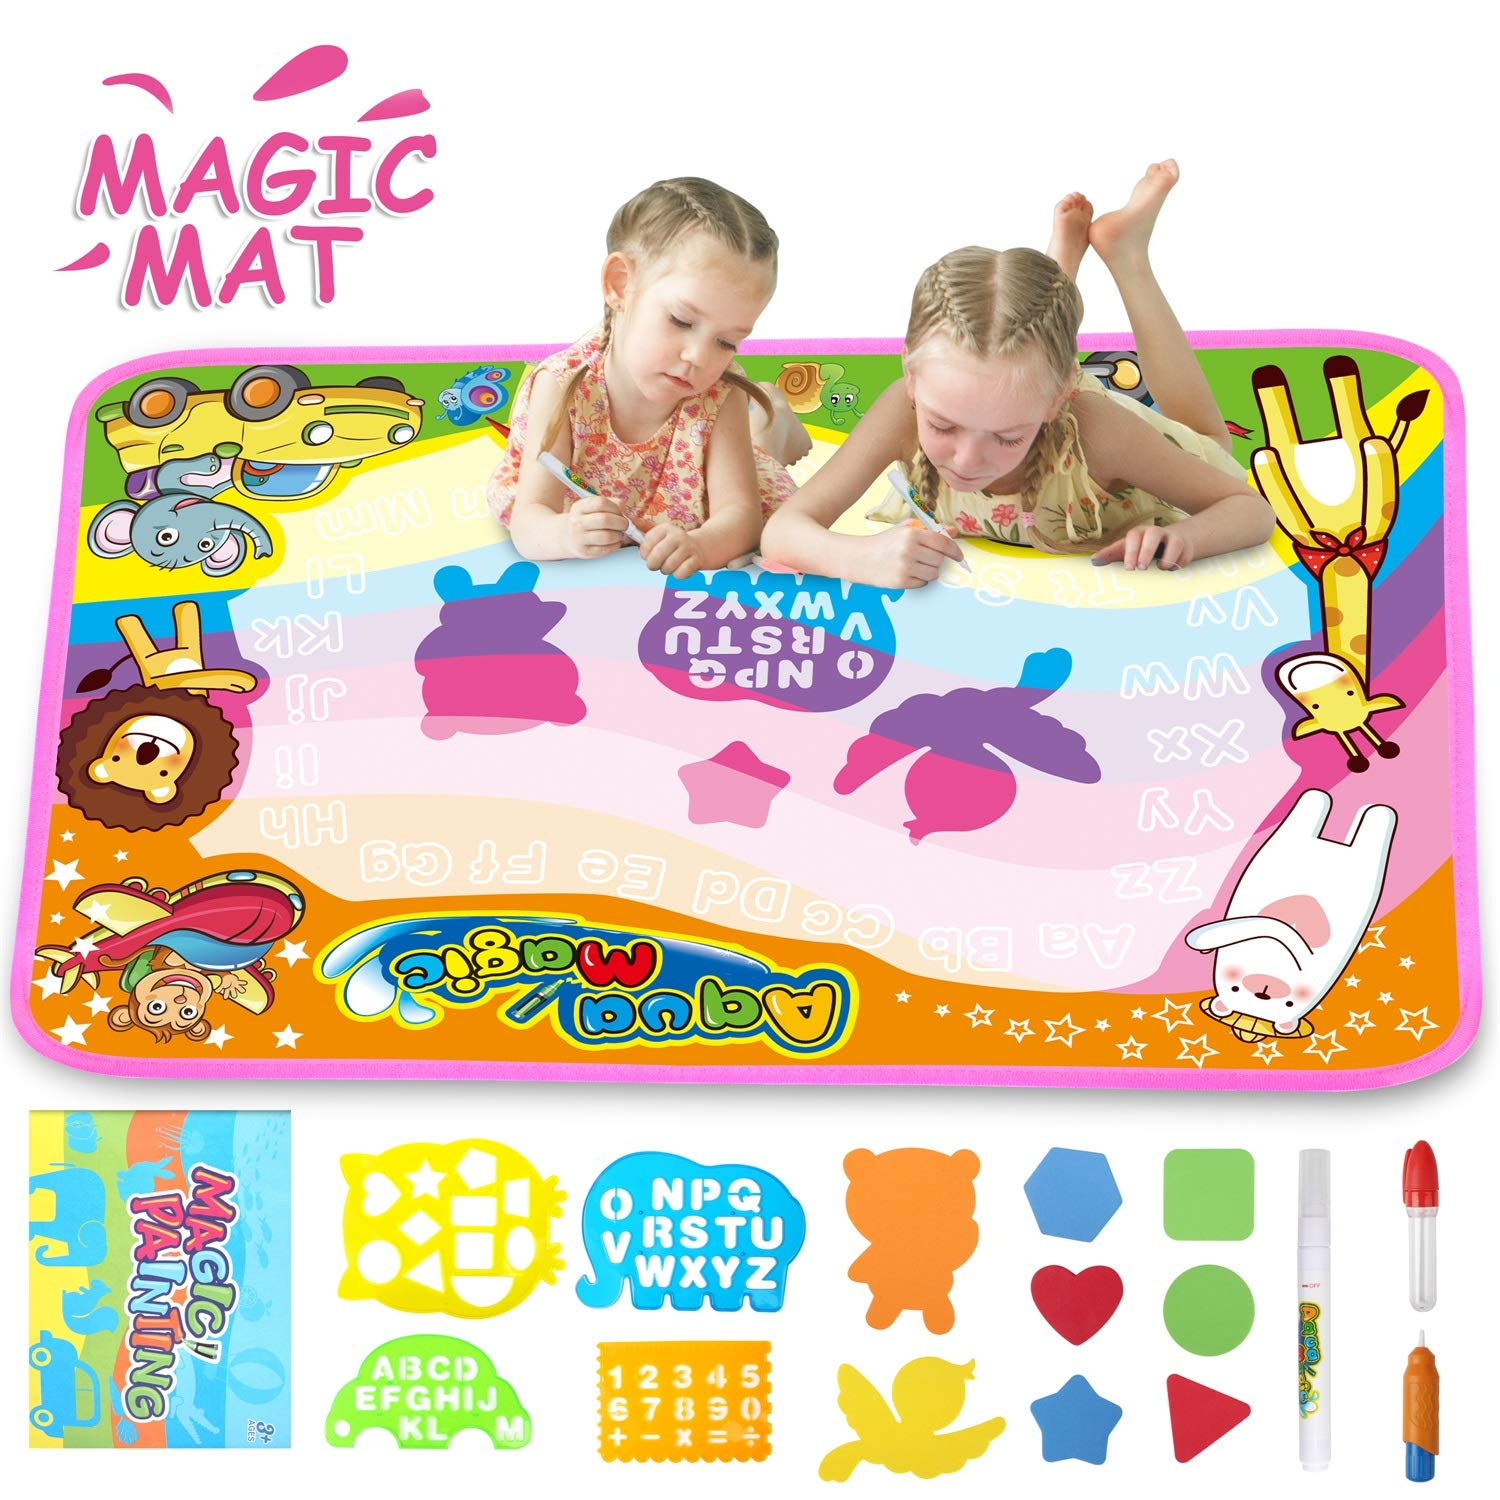 FONLLAM Aqua Magic Mat-Kids Doodle Water Drawing Mat-Educational Toys for 2 3 4 5+ Girls Boys Toddlers with 3 Water Pens and Drawing Booklet, 34'' X 22.5'' by FONLLAM